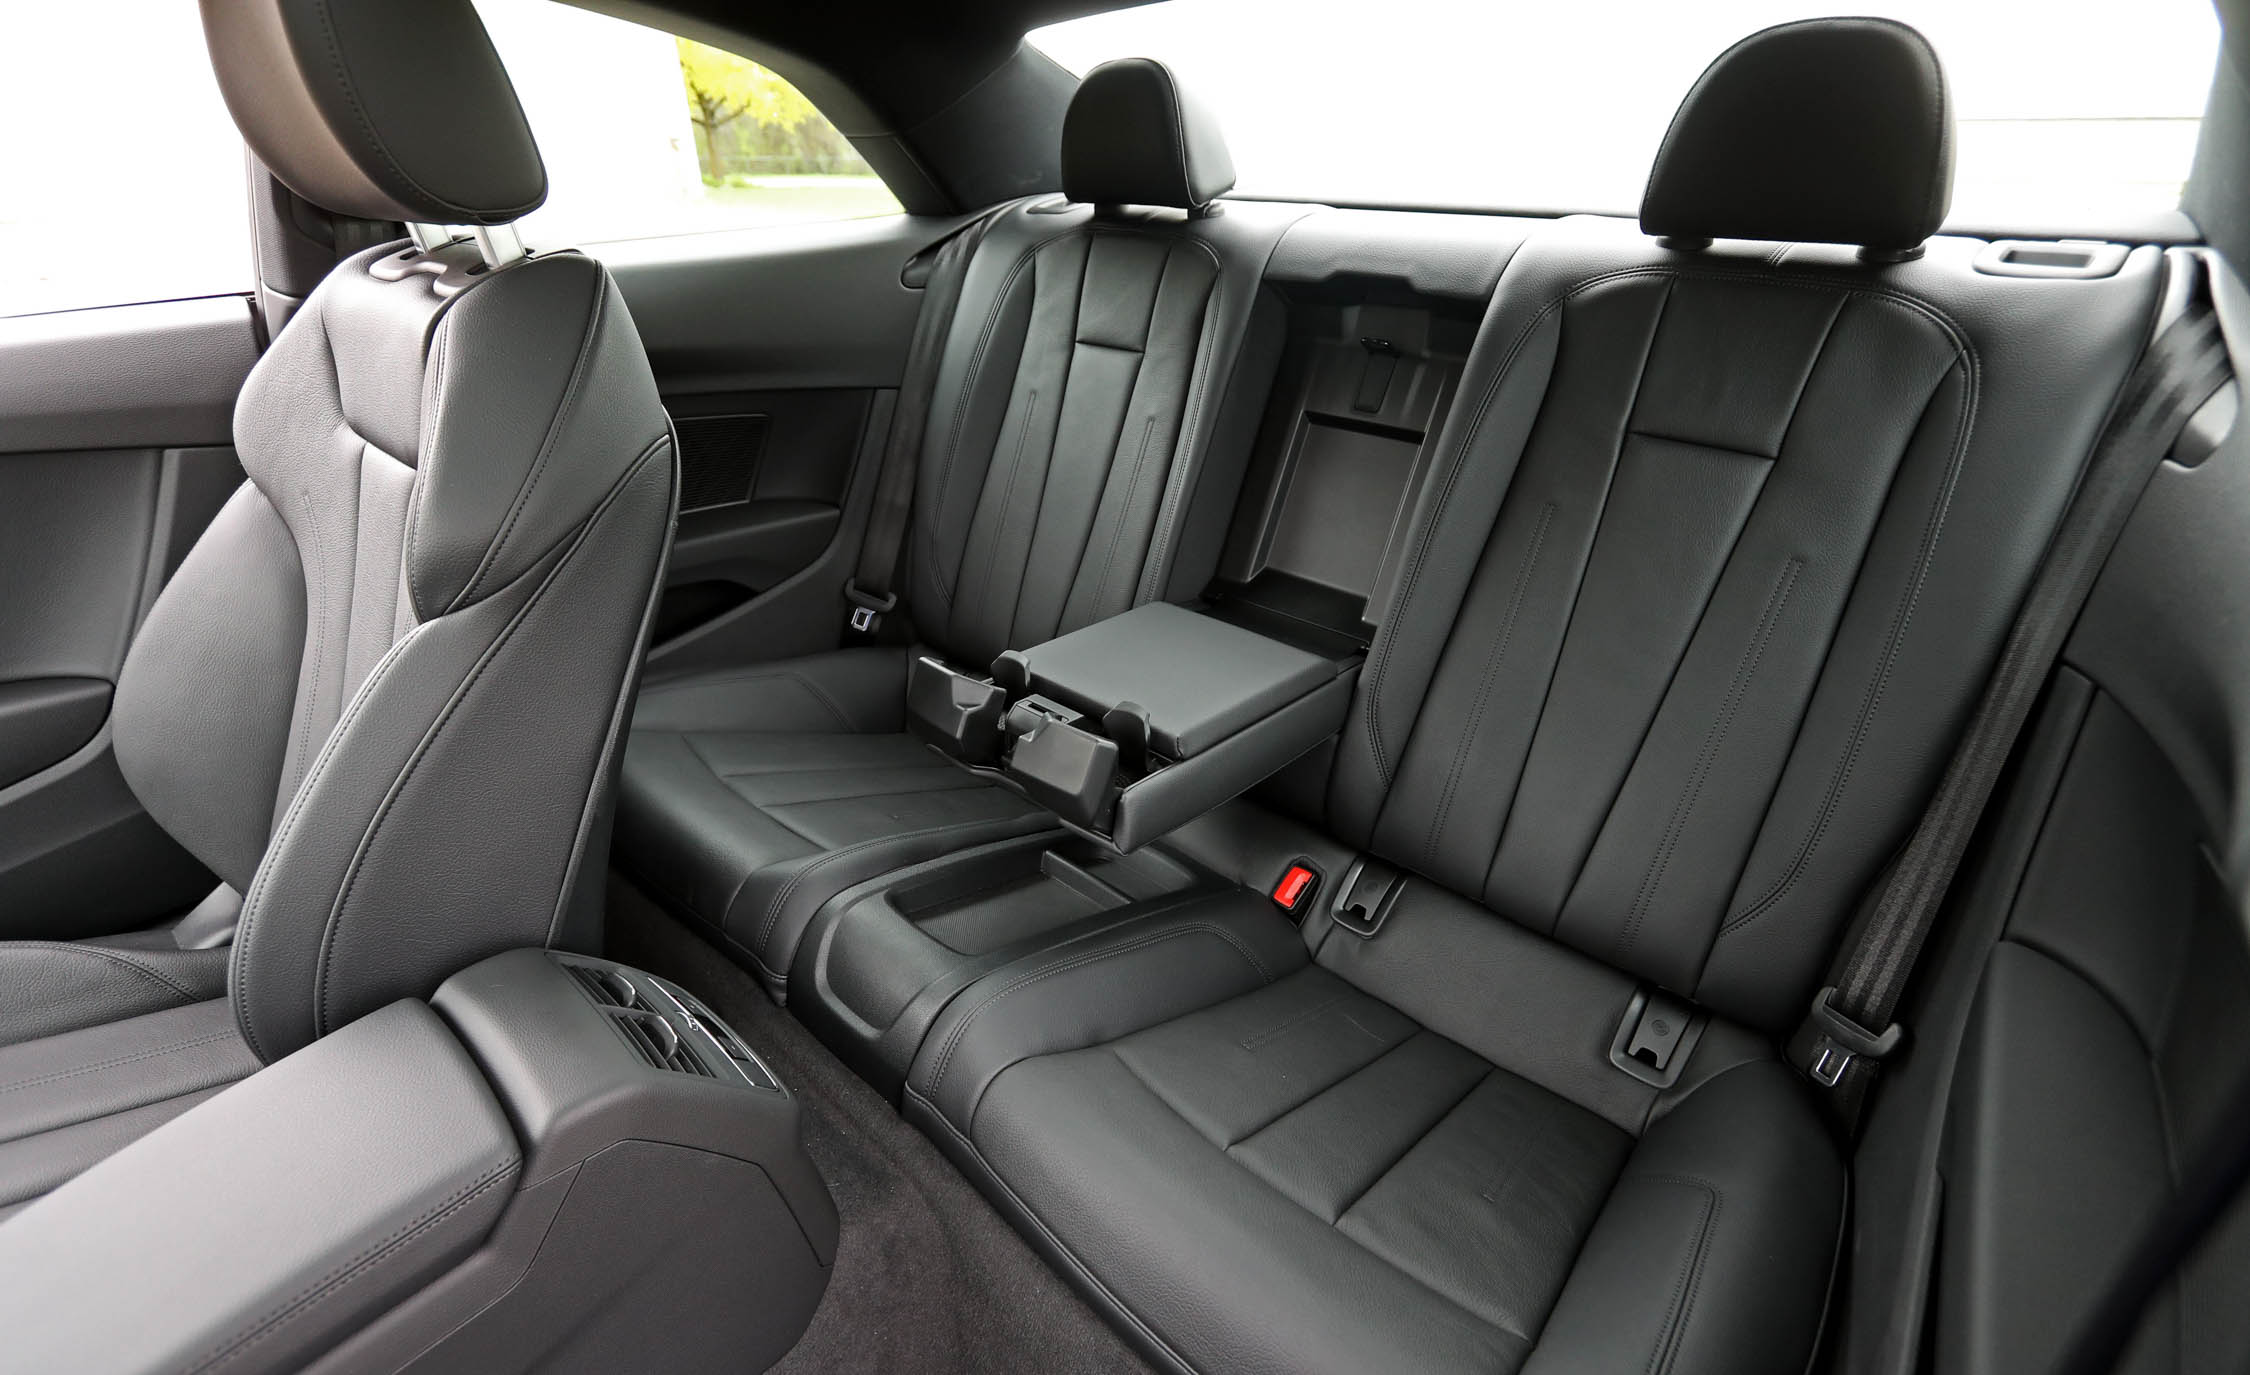 2018 Audi A5 Coupe Interior Seats Rear Armrest (Photo 31 of 50)